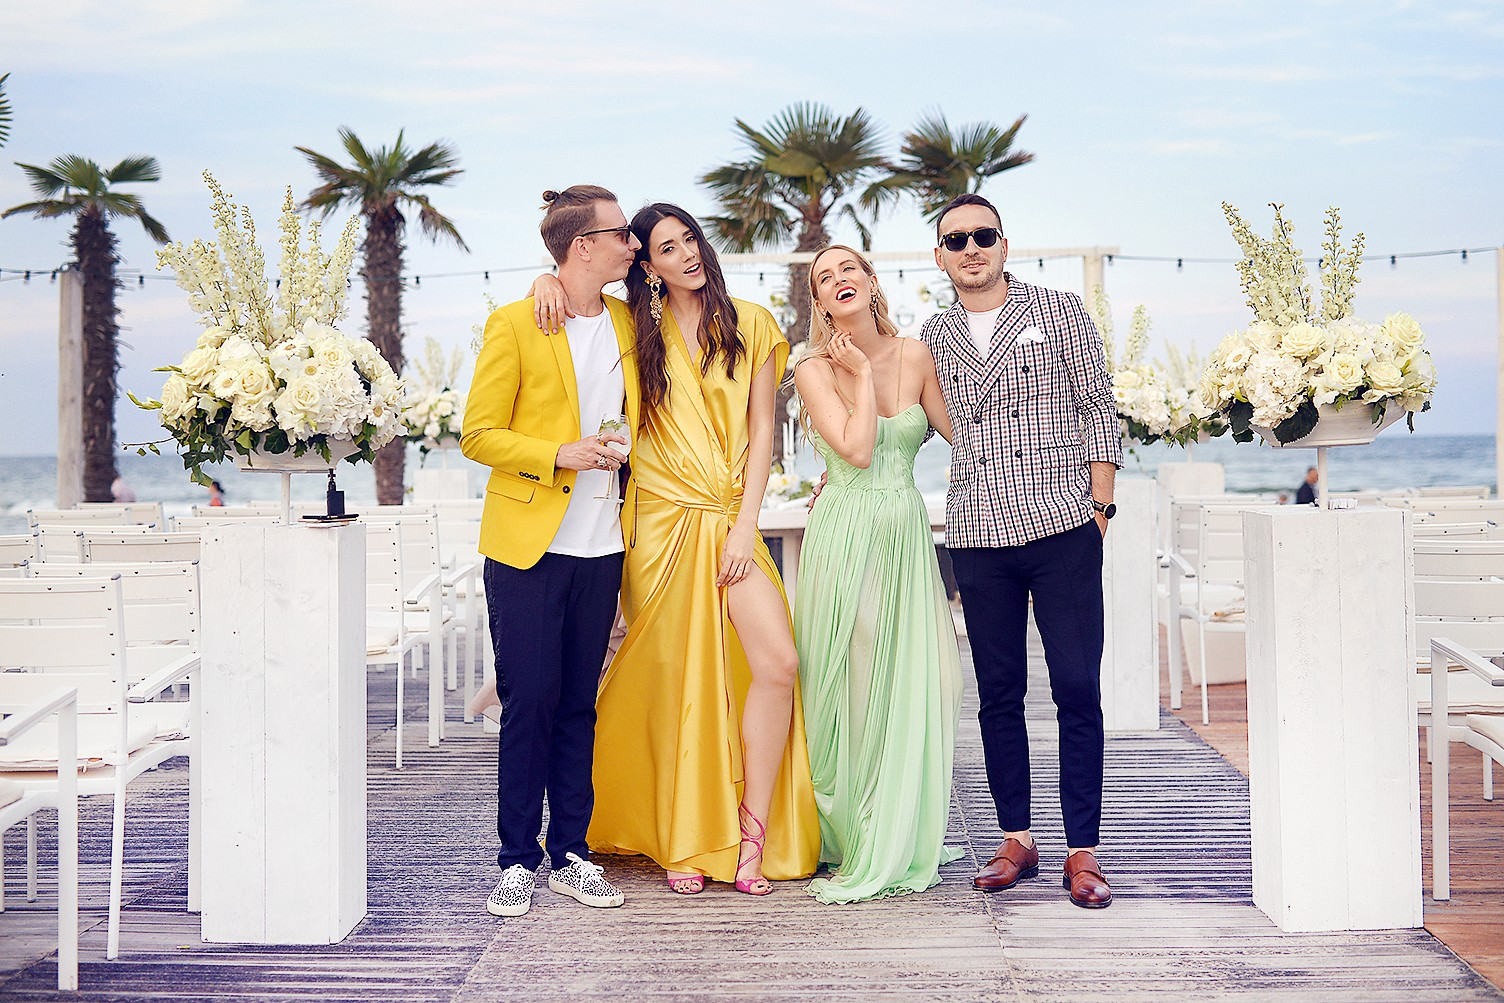 10fabulous_muses_loft_wedding_beach_wedding_dress_cocktail_dress_loft_mamaia copy